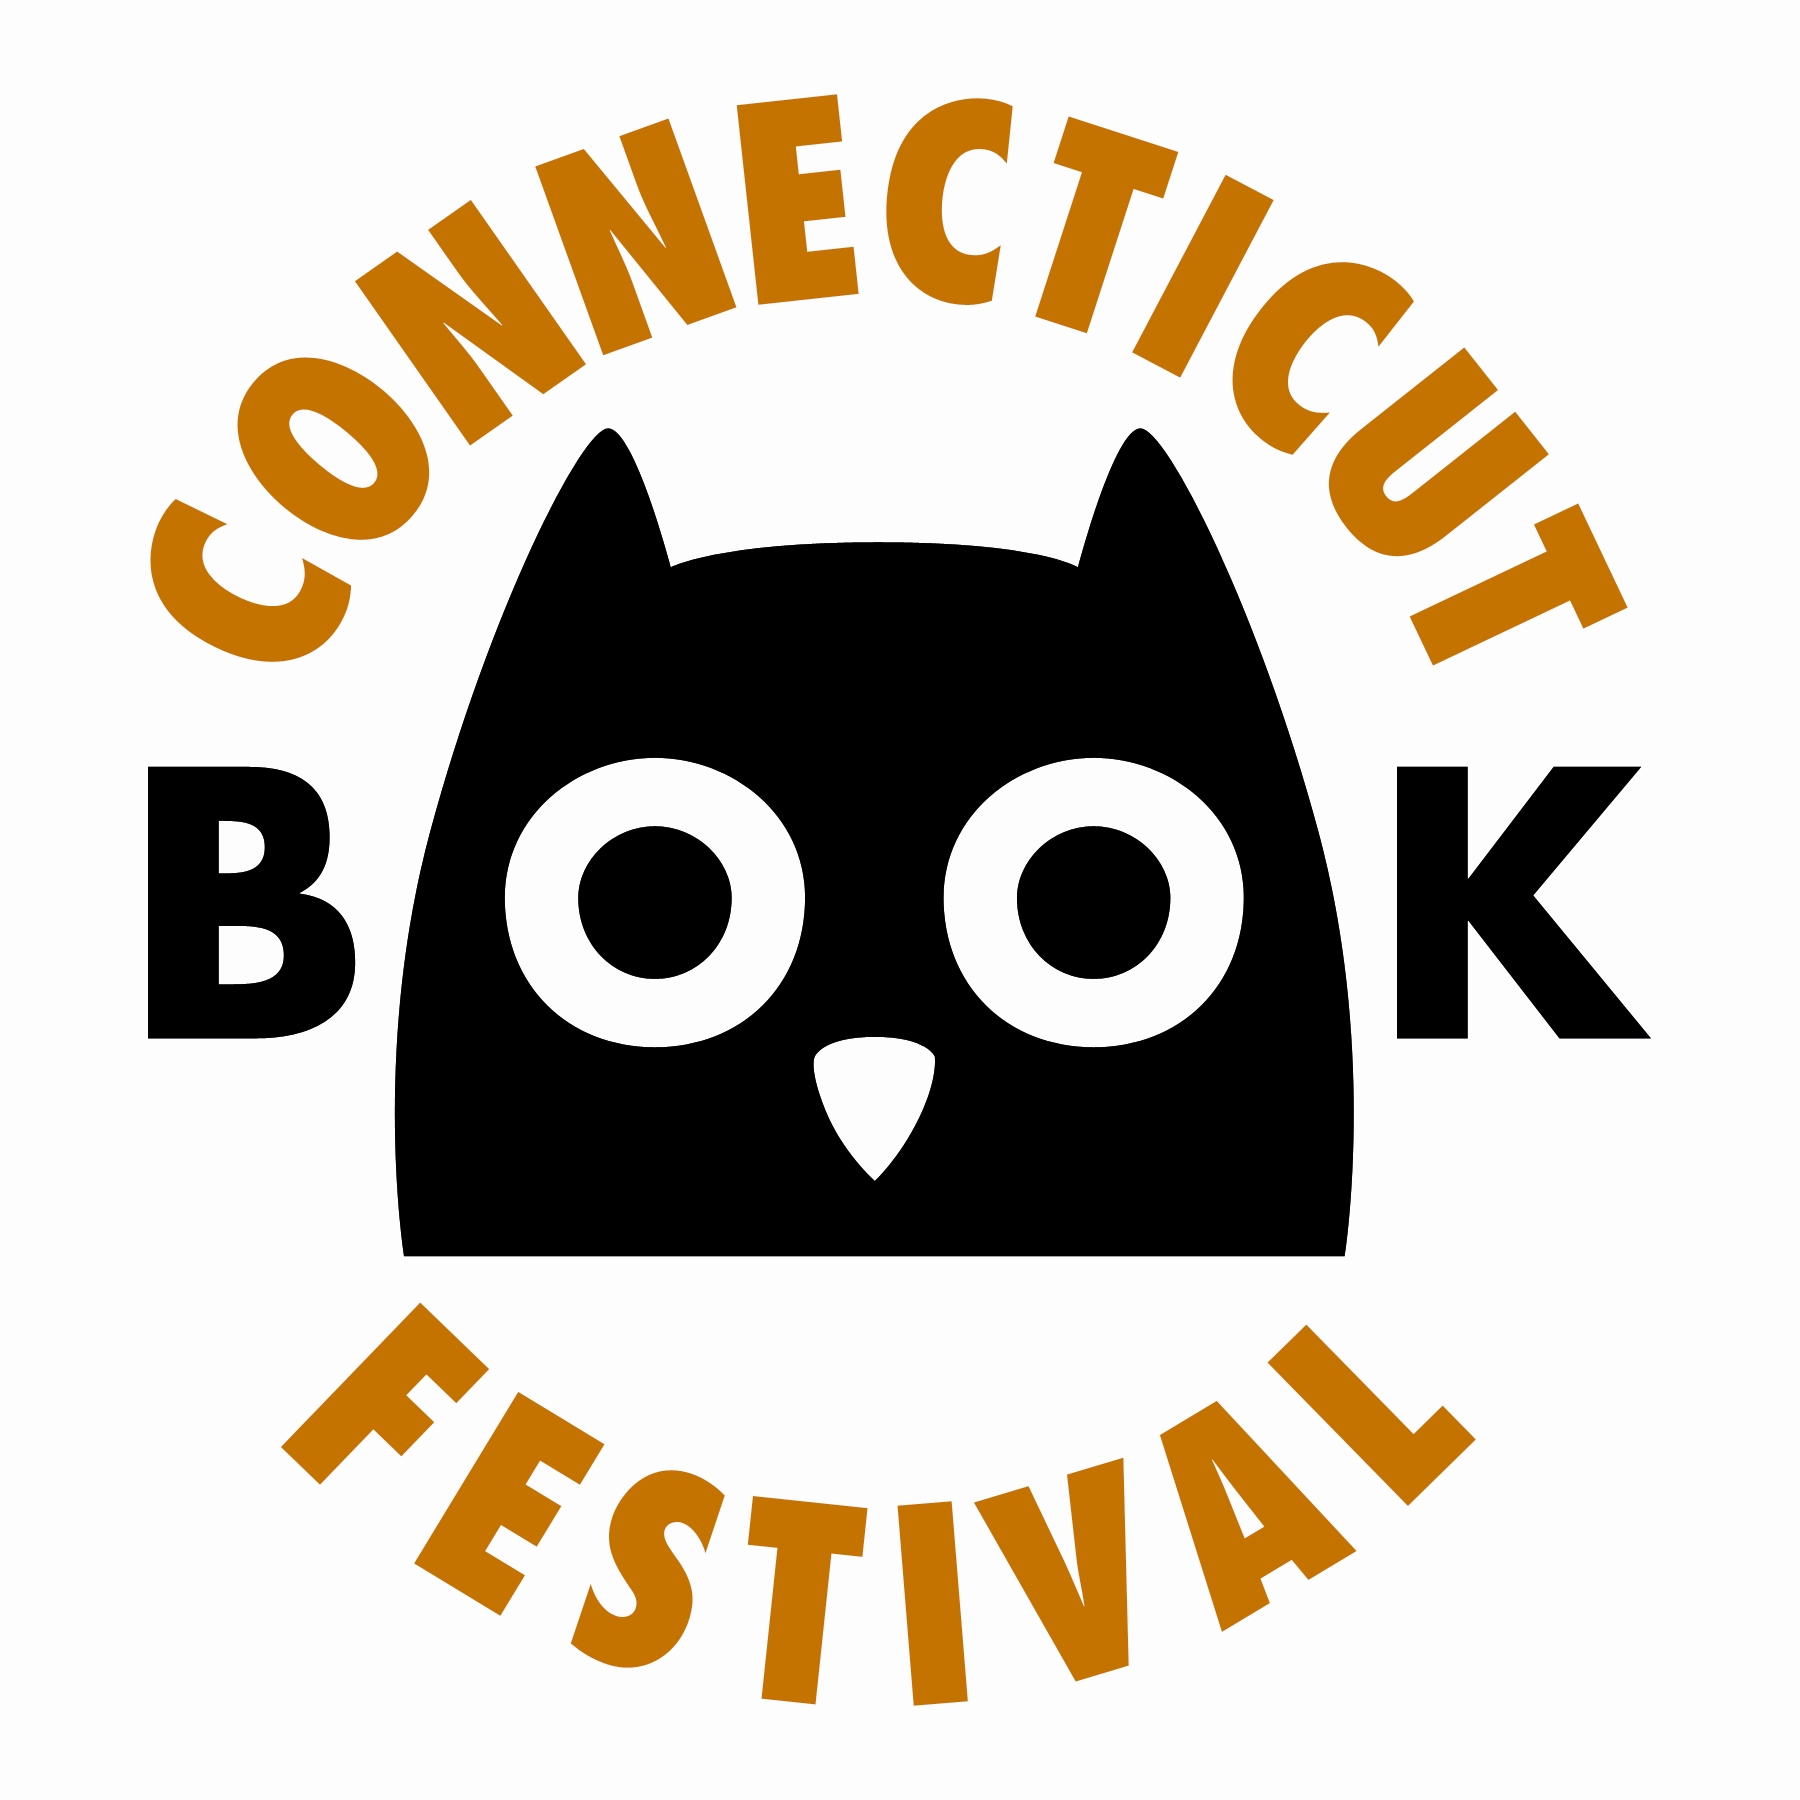 Connecticut Book Festival This Weekend